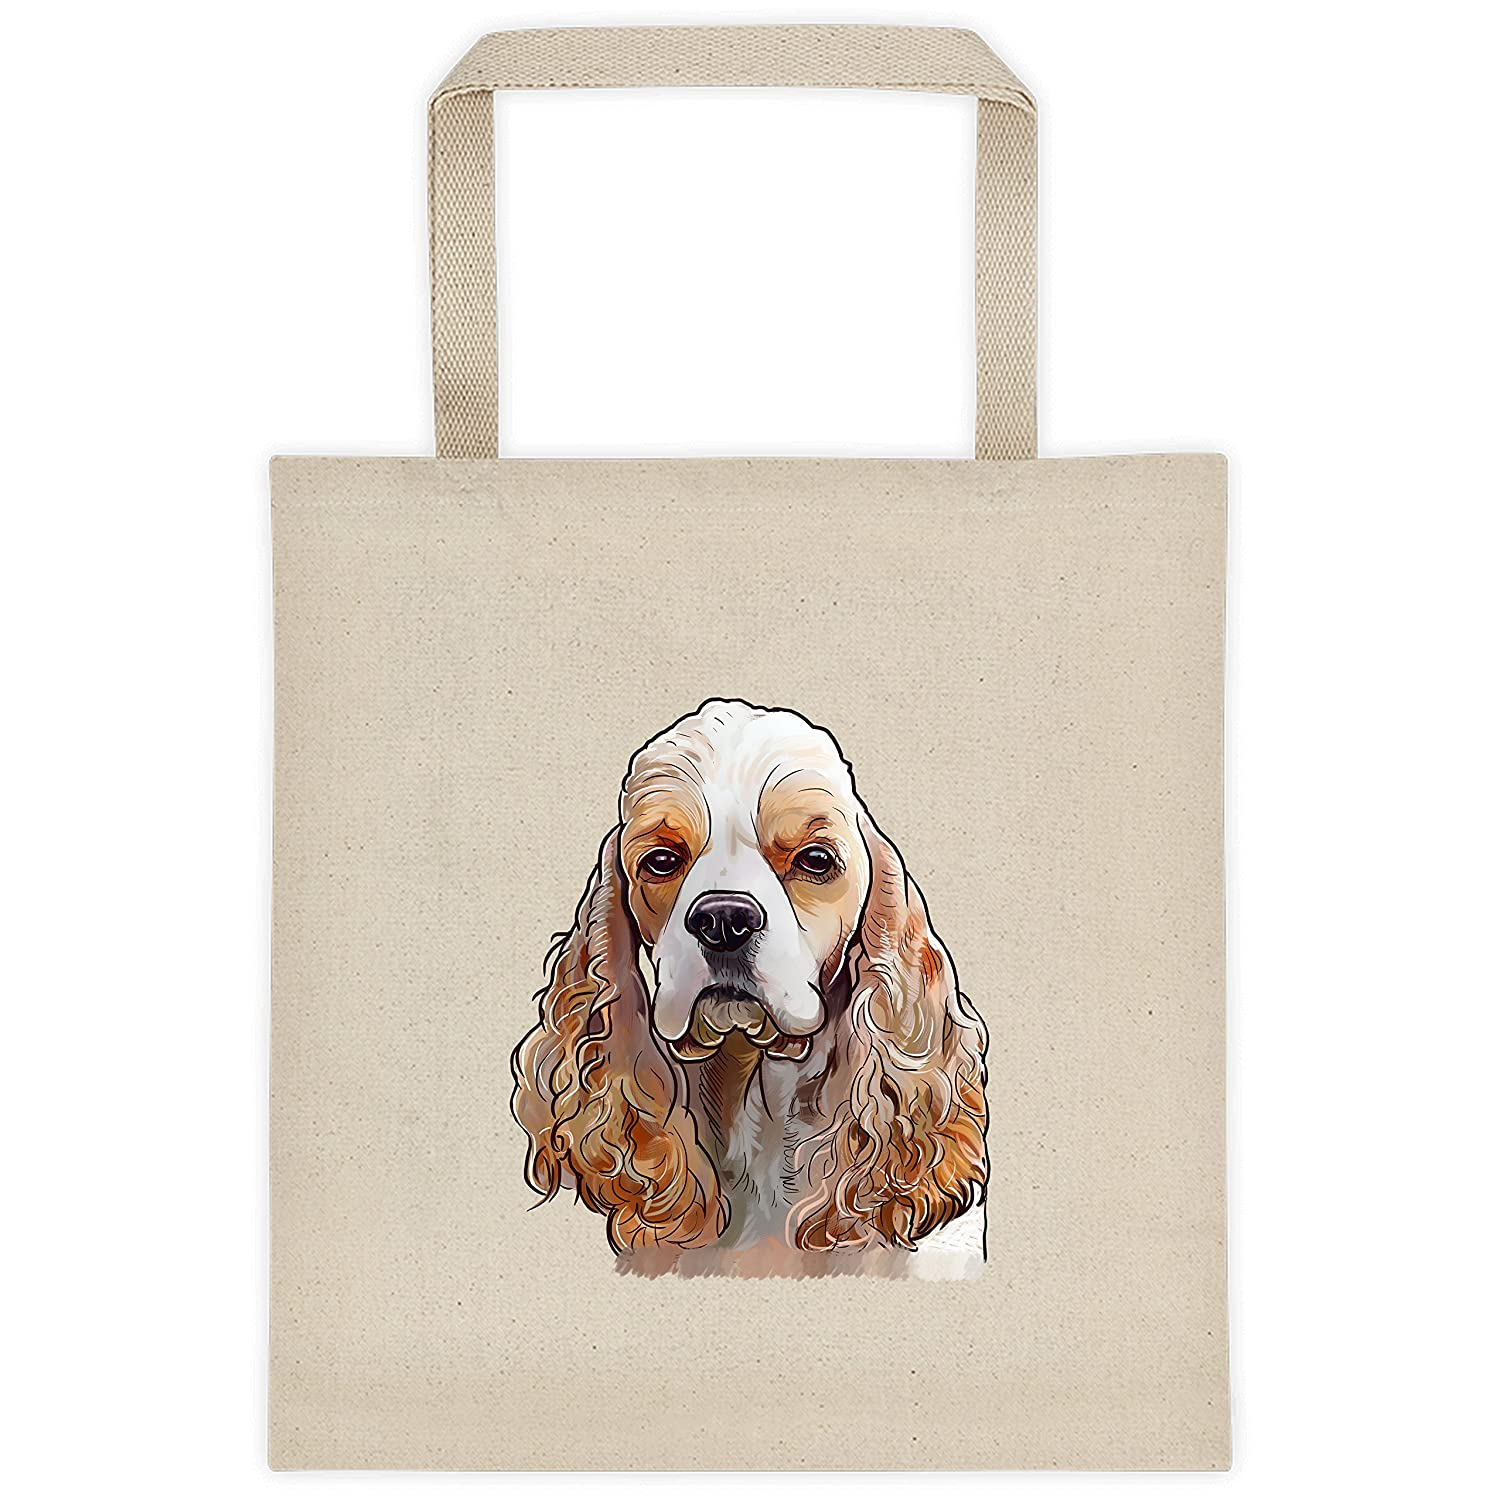 ae8df827fa16 American Cocker Spaniel Dog Portrait Color Design Extra Large Eco Friendly  Reusable Cotton Canvas Grocery Shopping Tote Bag